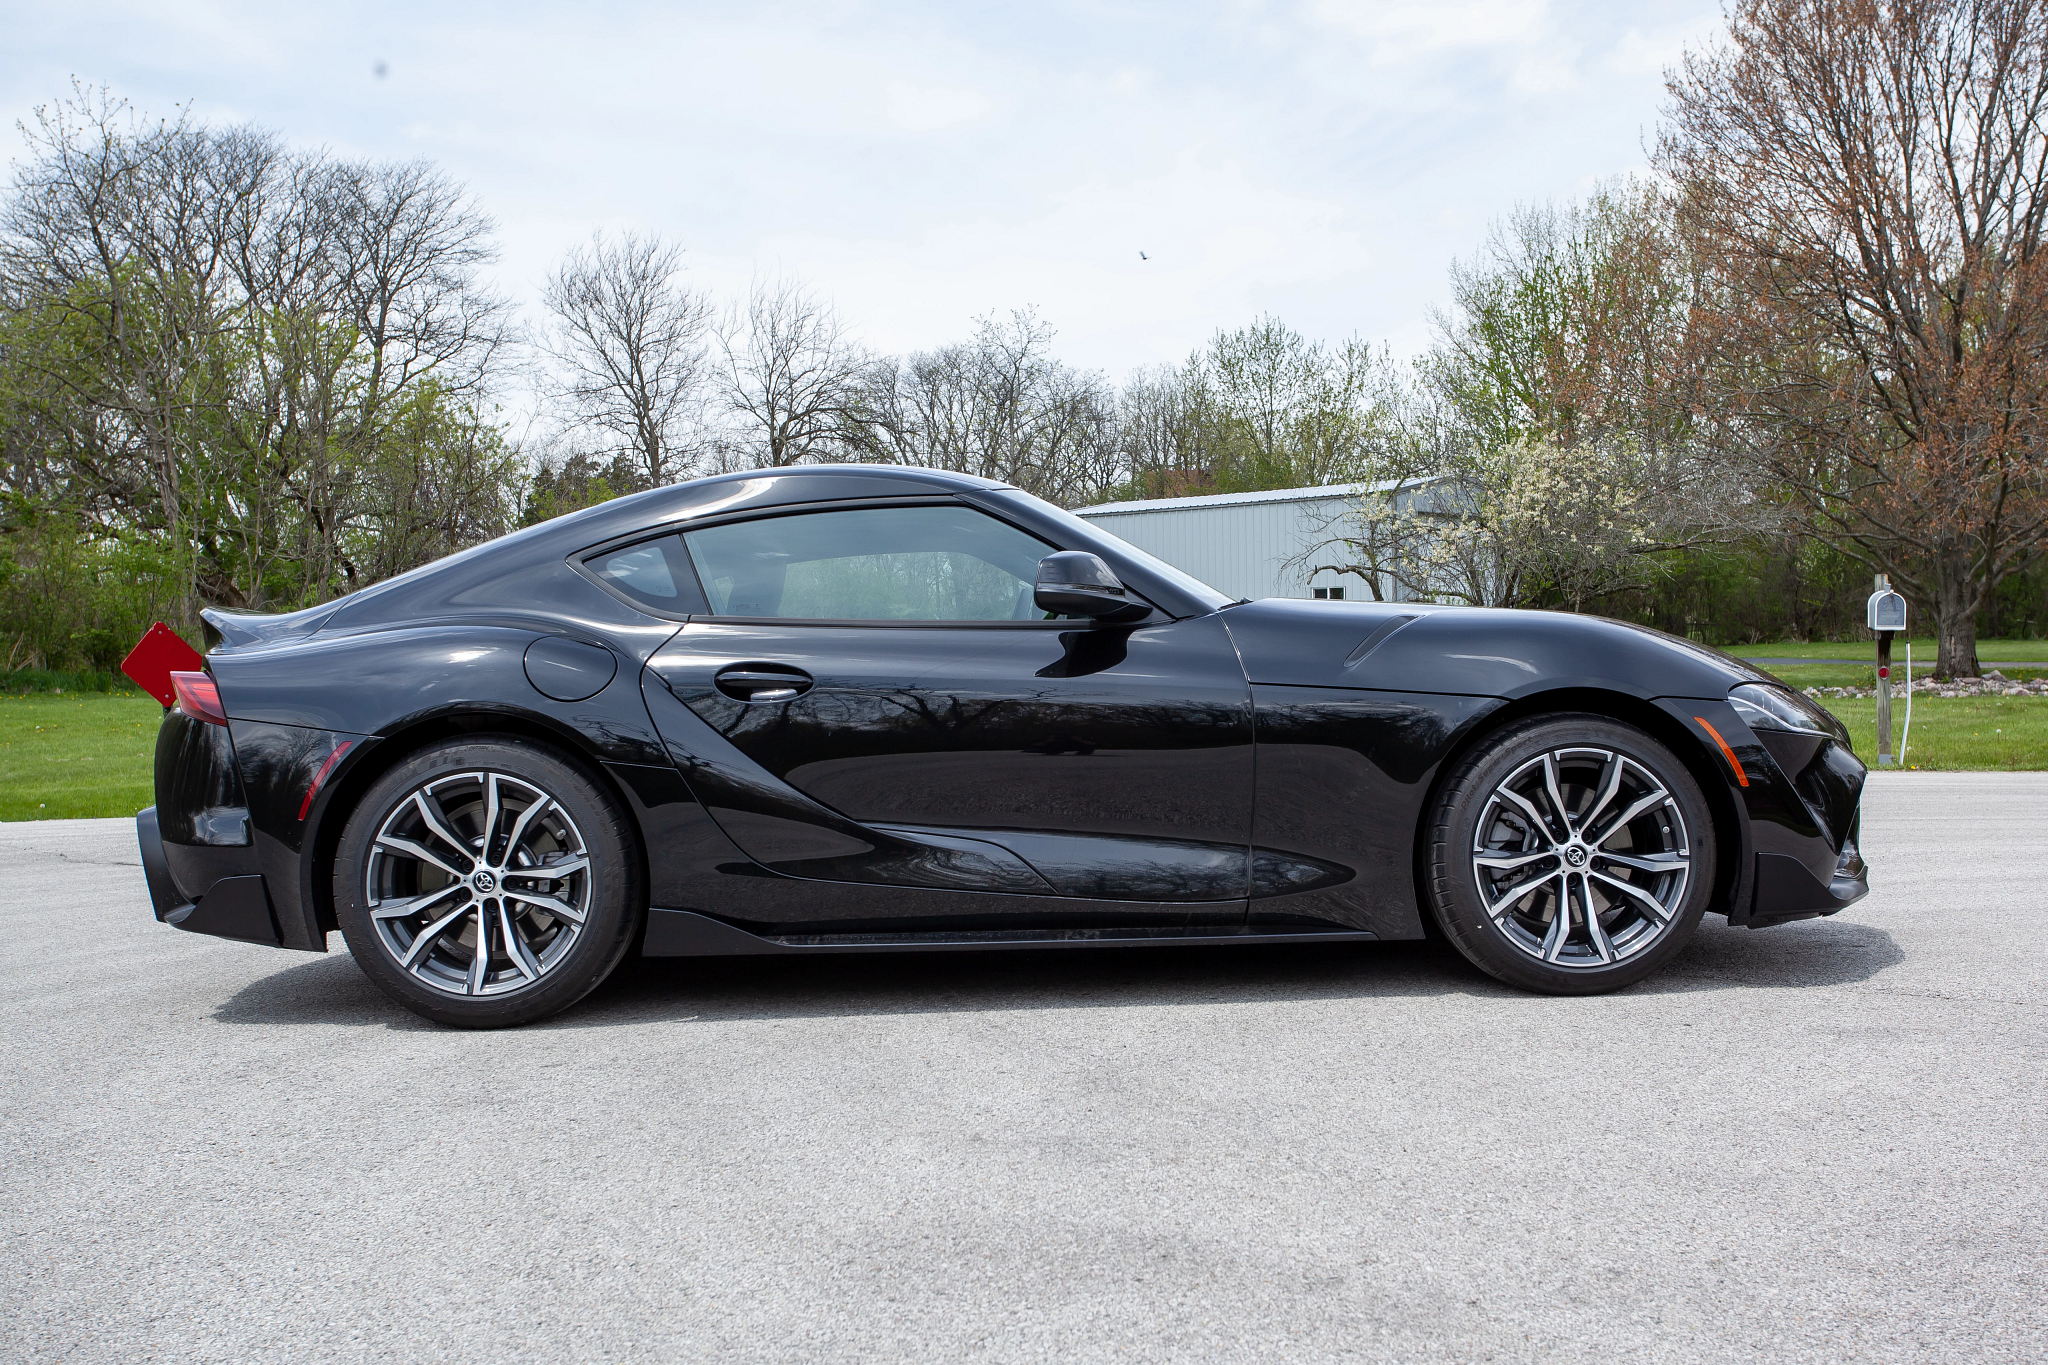 2021 toyota supra 7 things we like and 5 not so much